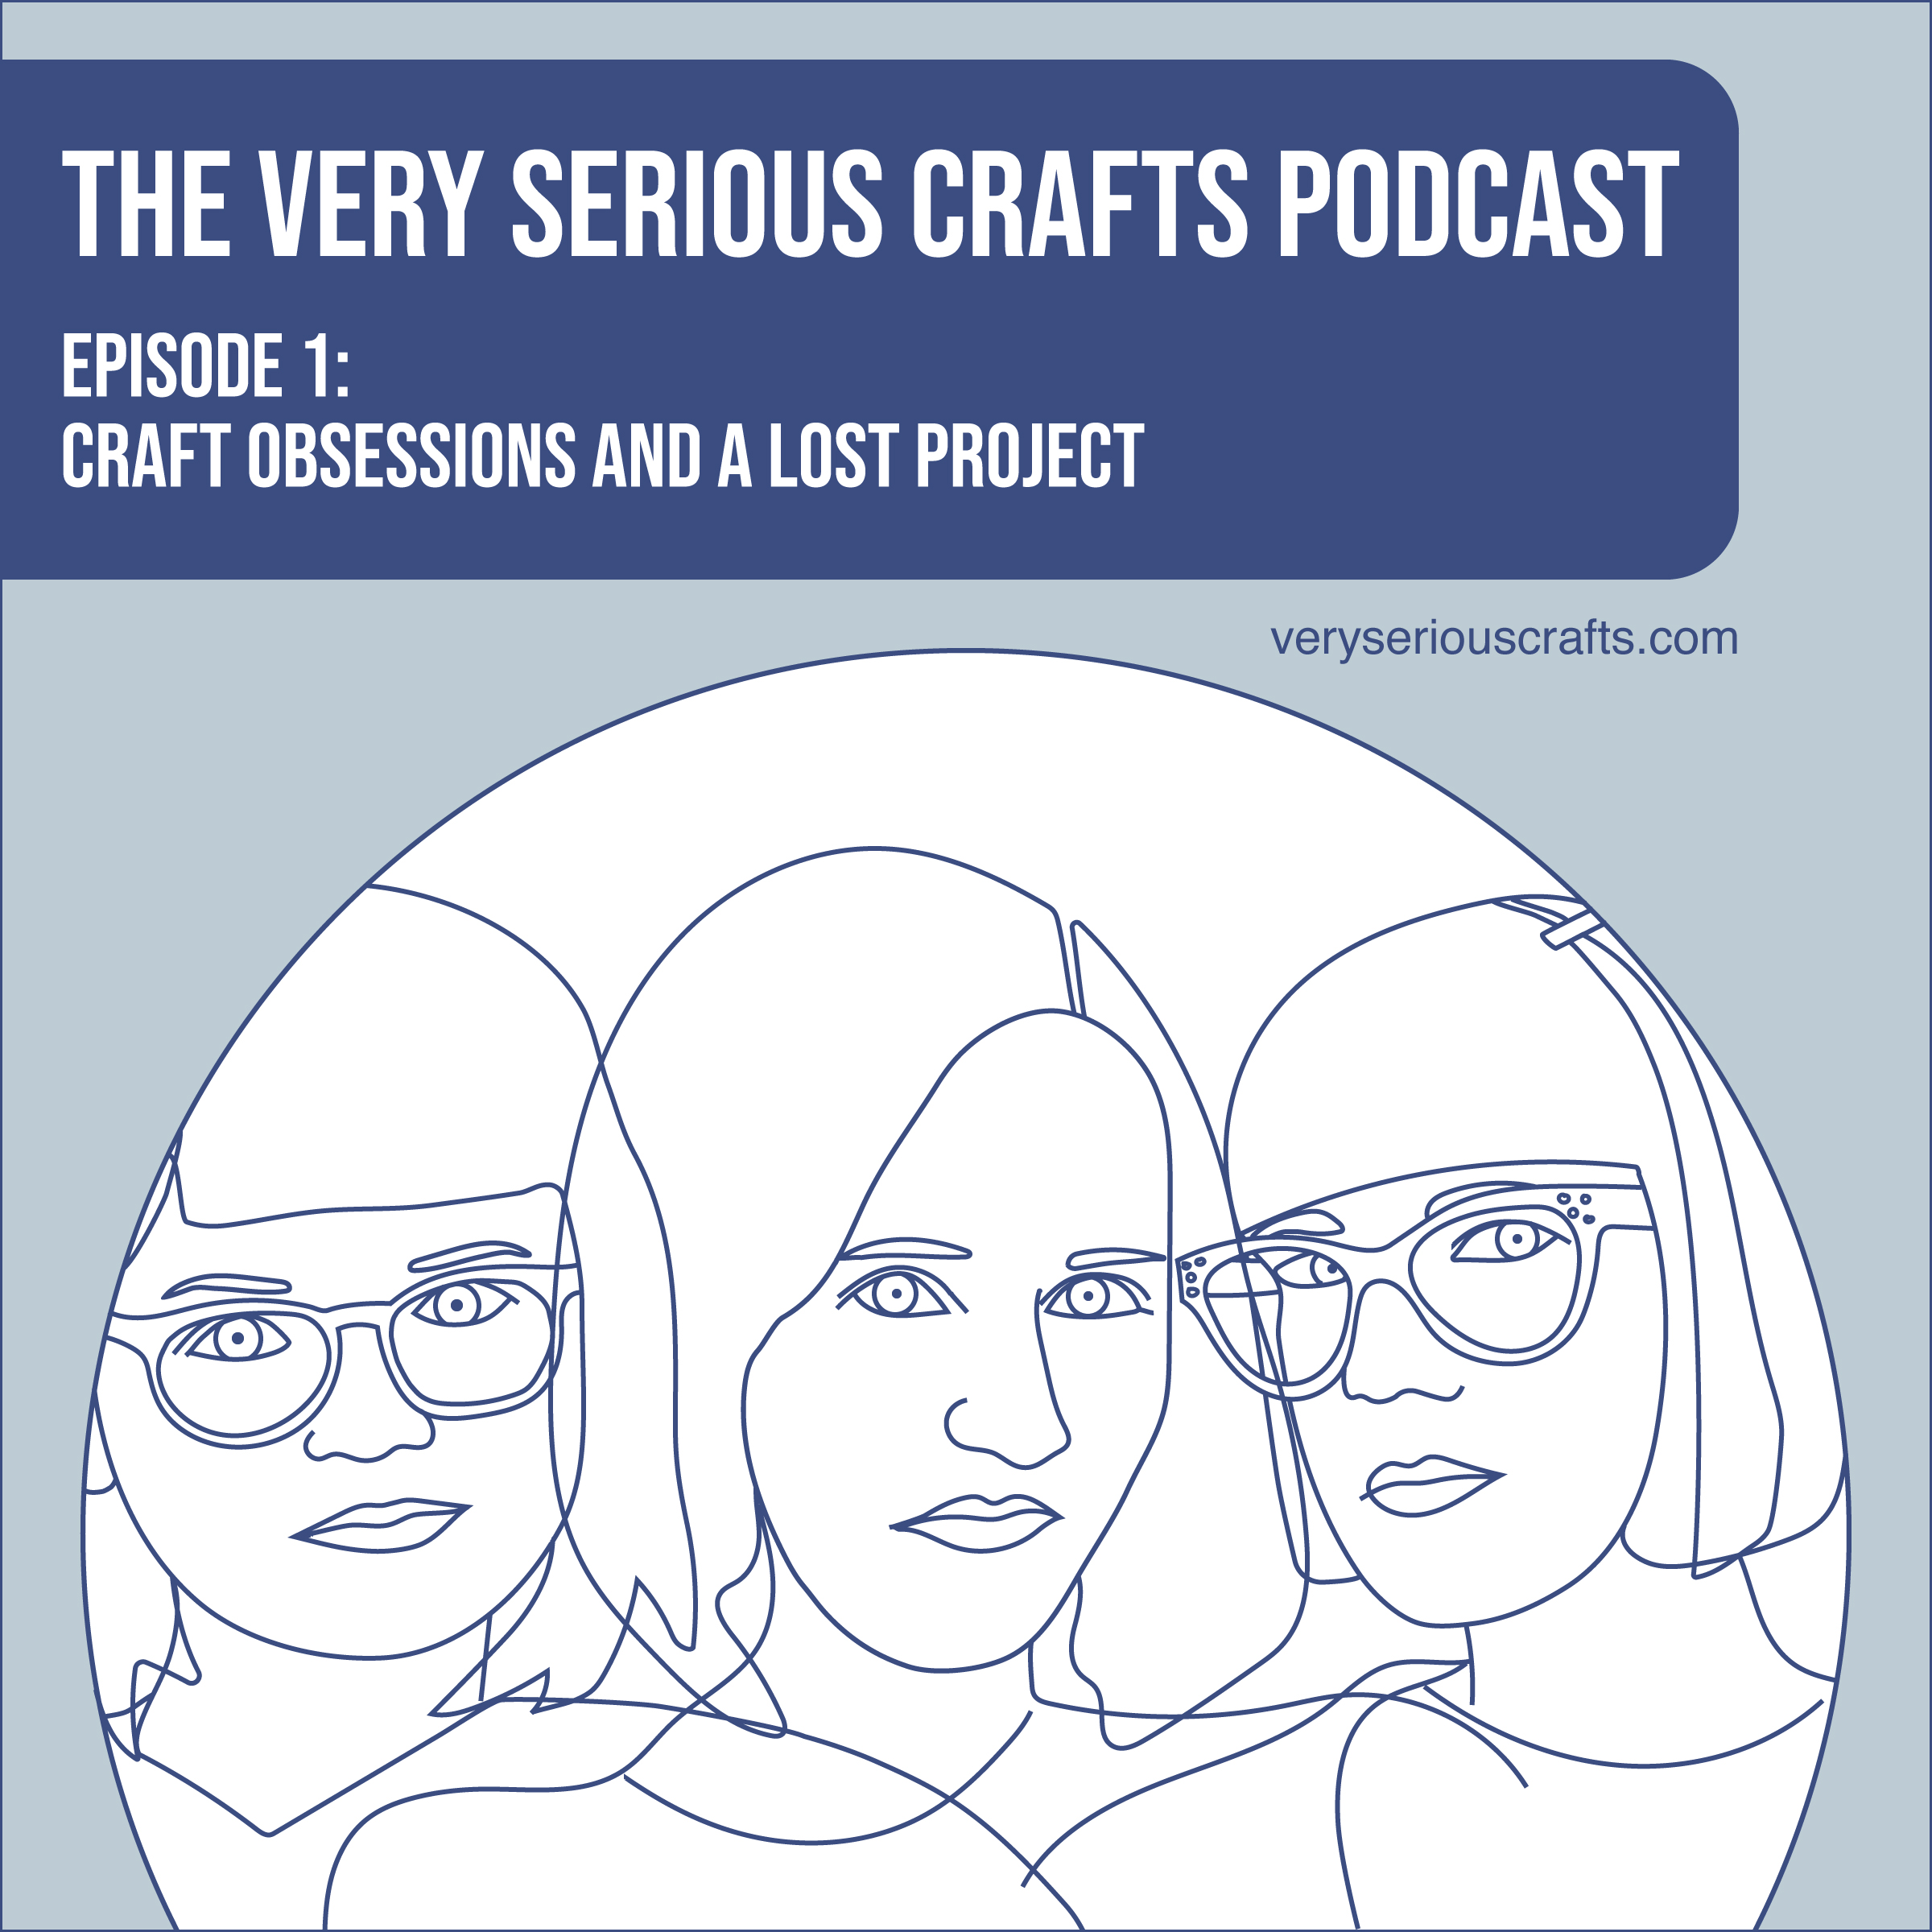 S1E01: Craft Obsessions and a Lost Project